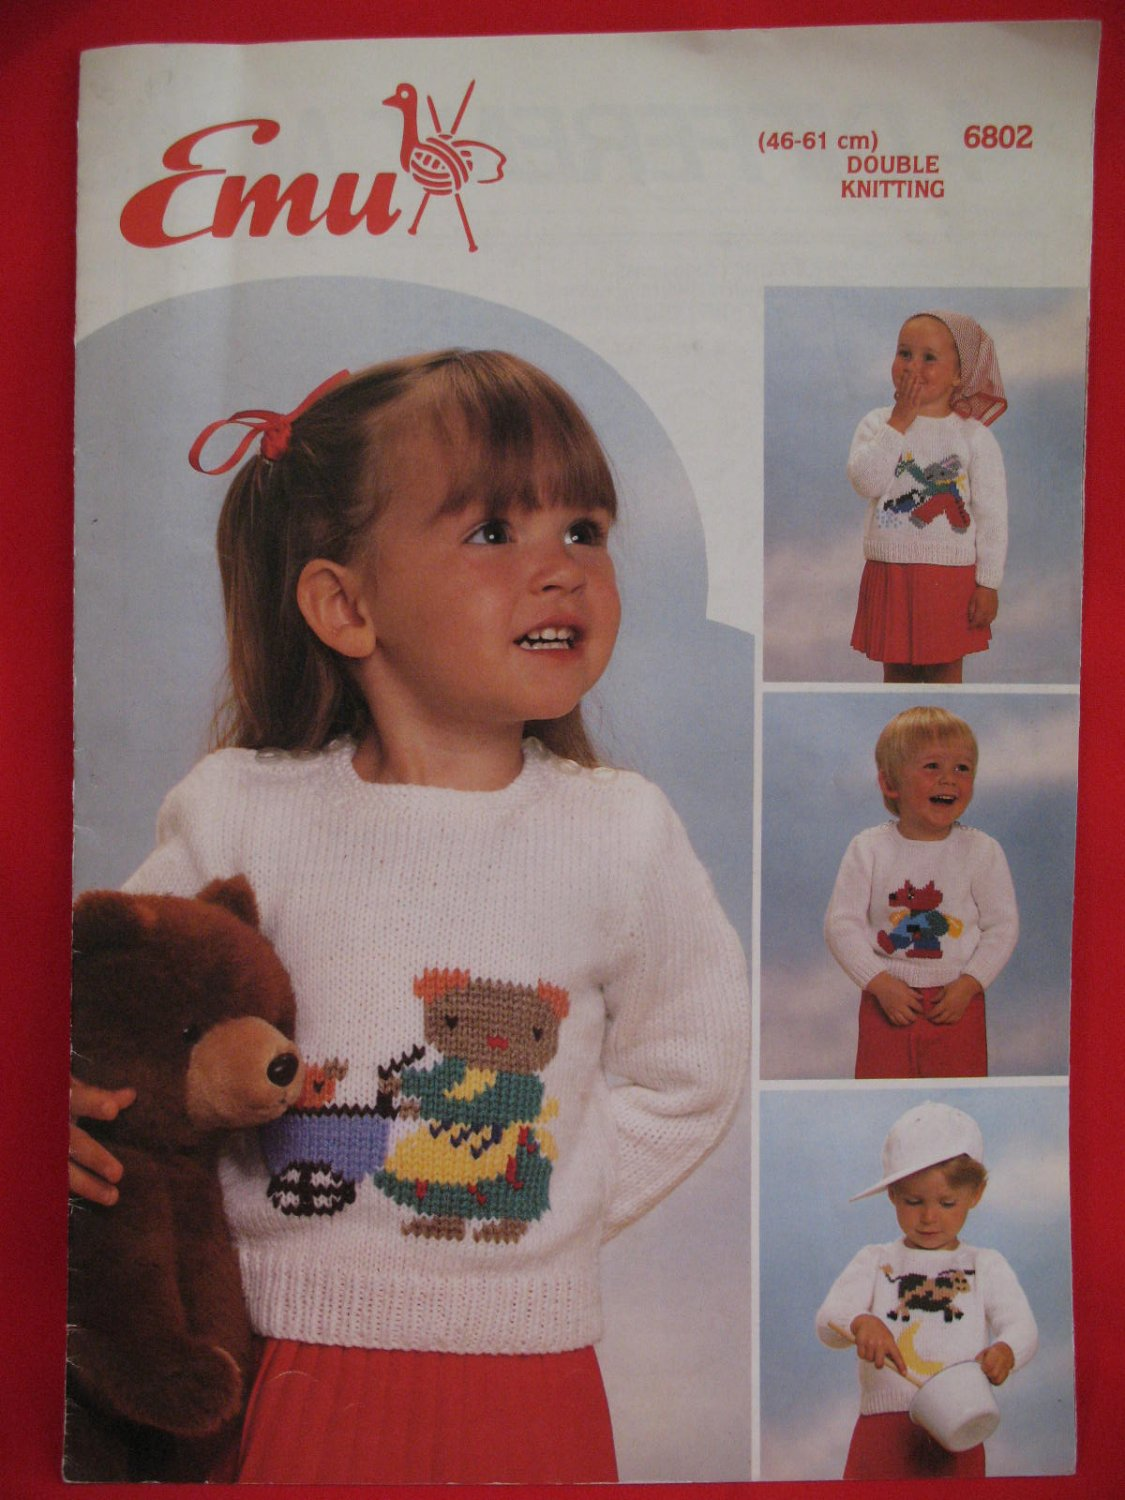 Emu Double Knitting Patterns Nursery Rhyme Sweaters Baby Children Sizes 46 - 61 CM.